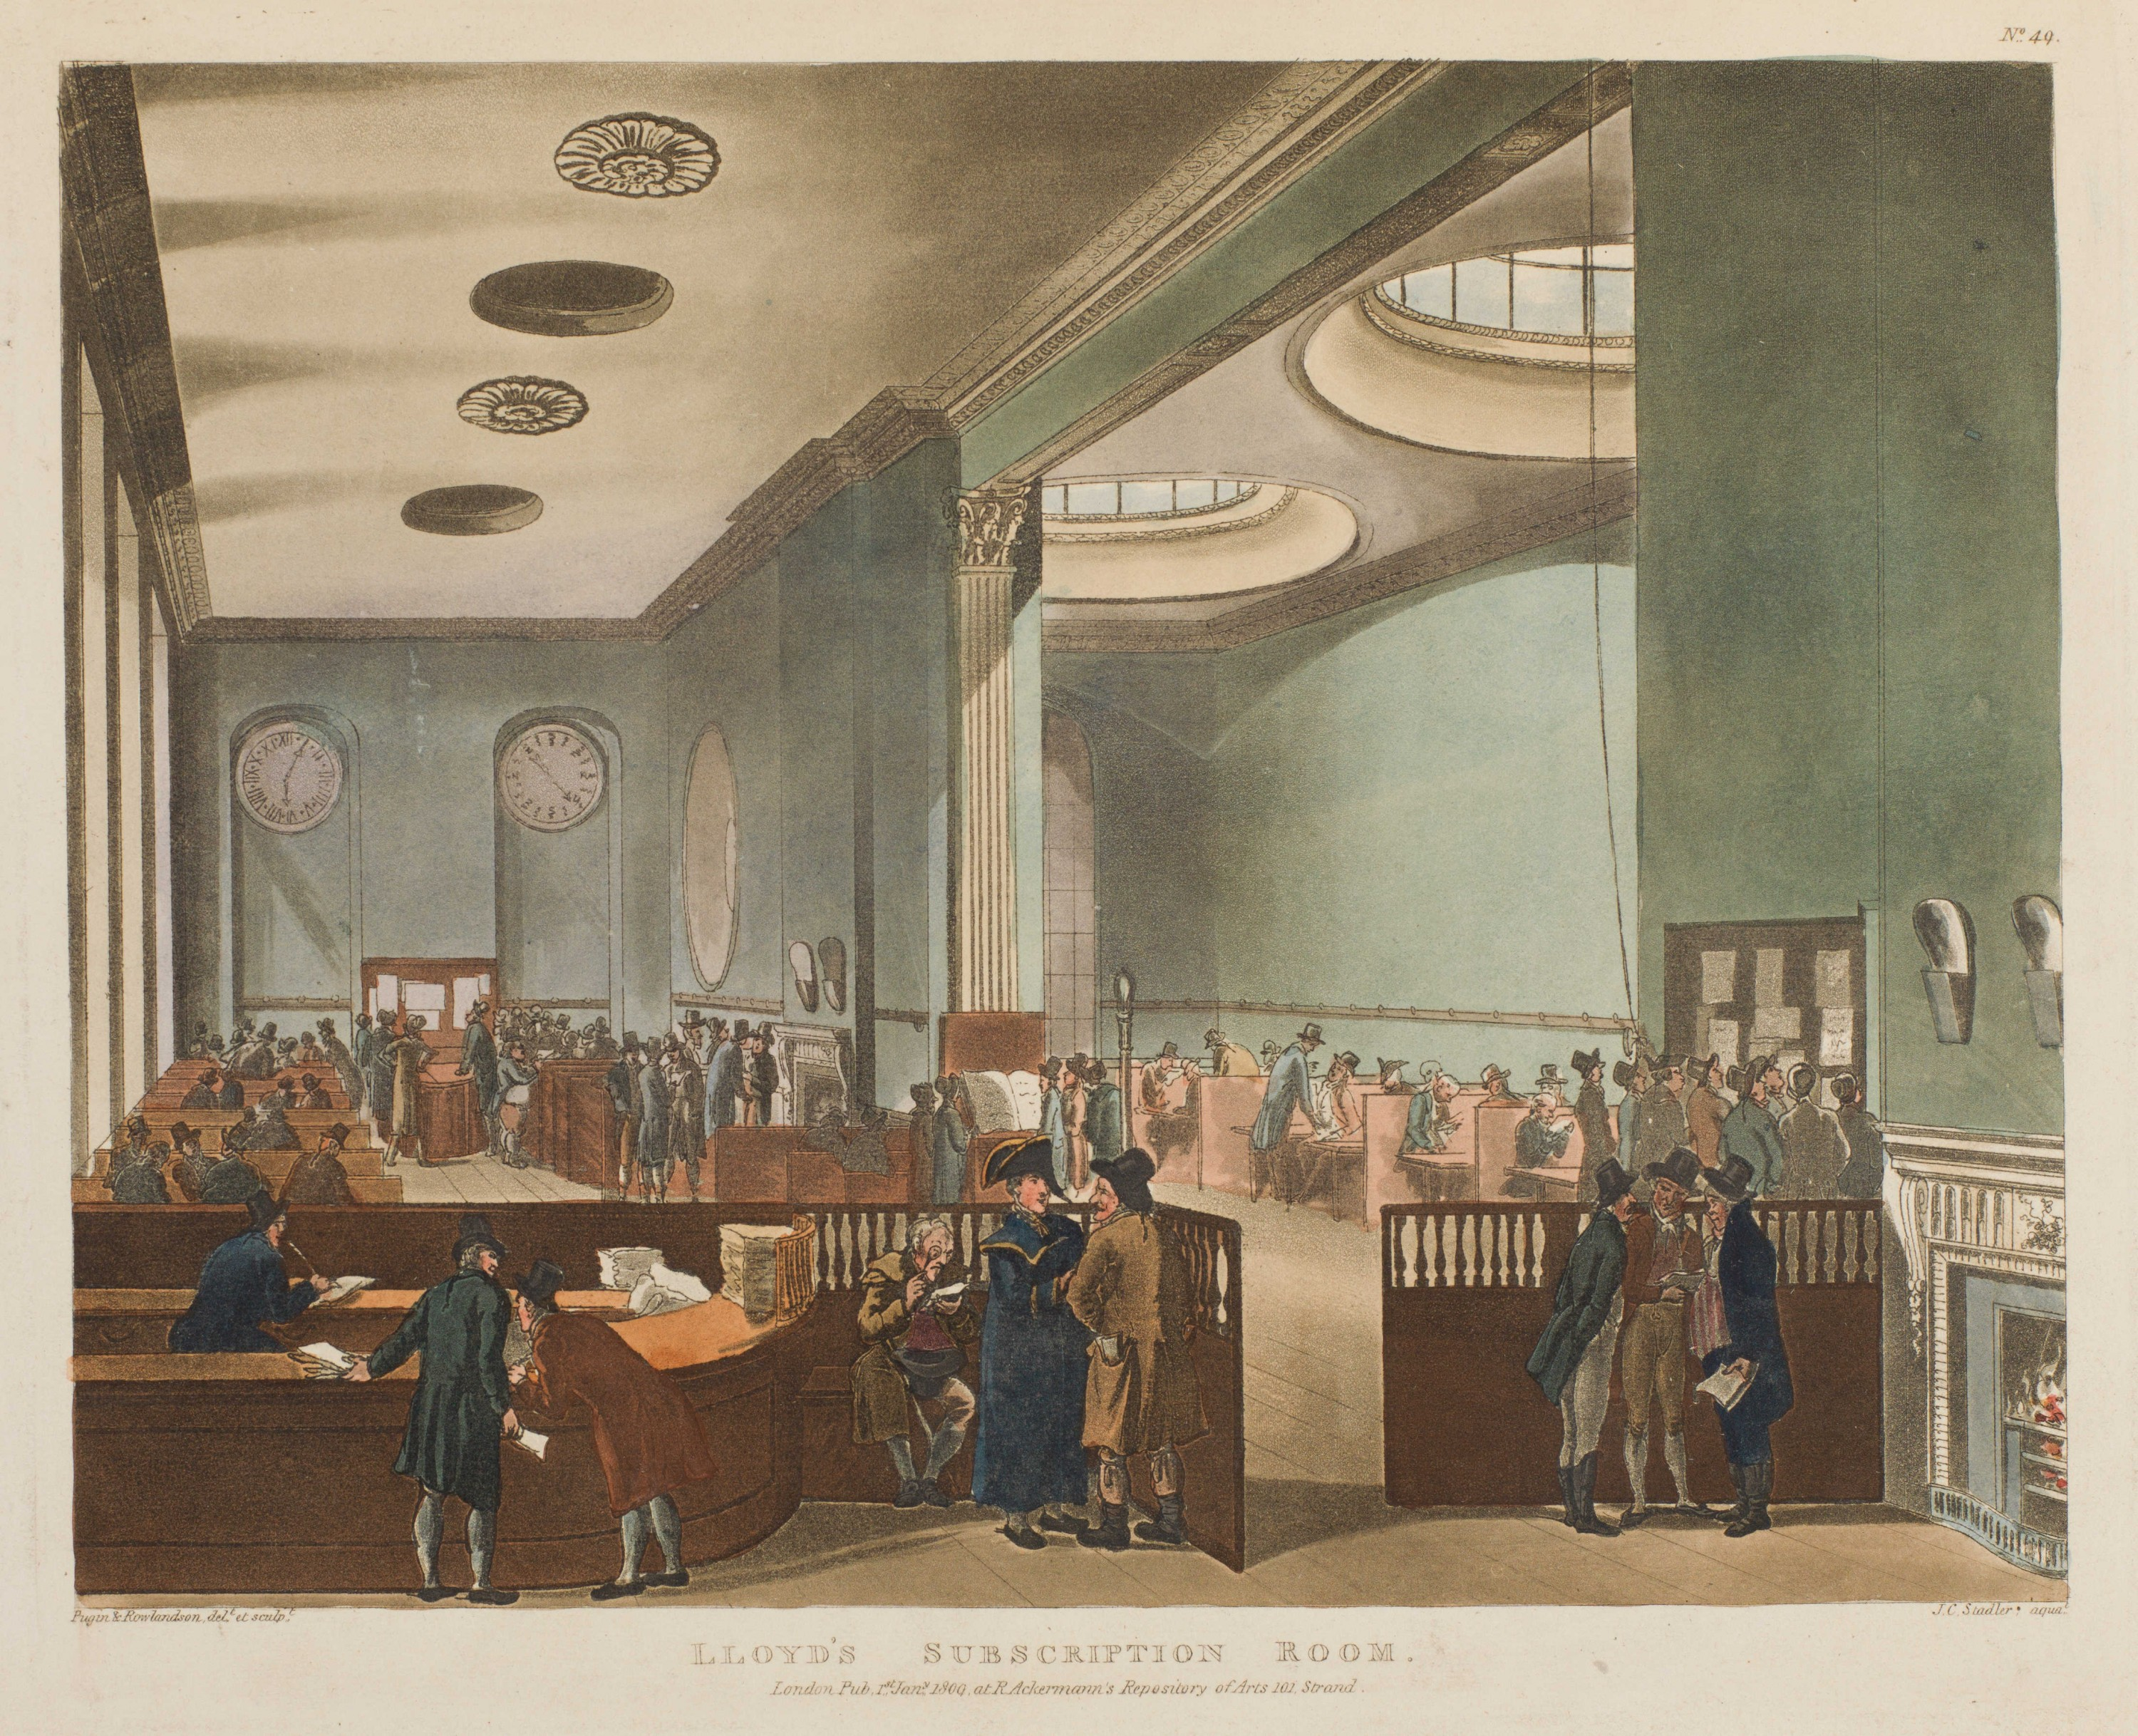 049-Lloyds-Subscription-Rooms